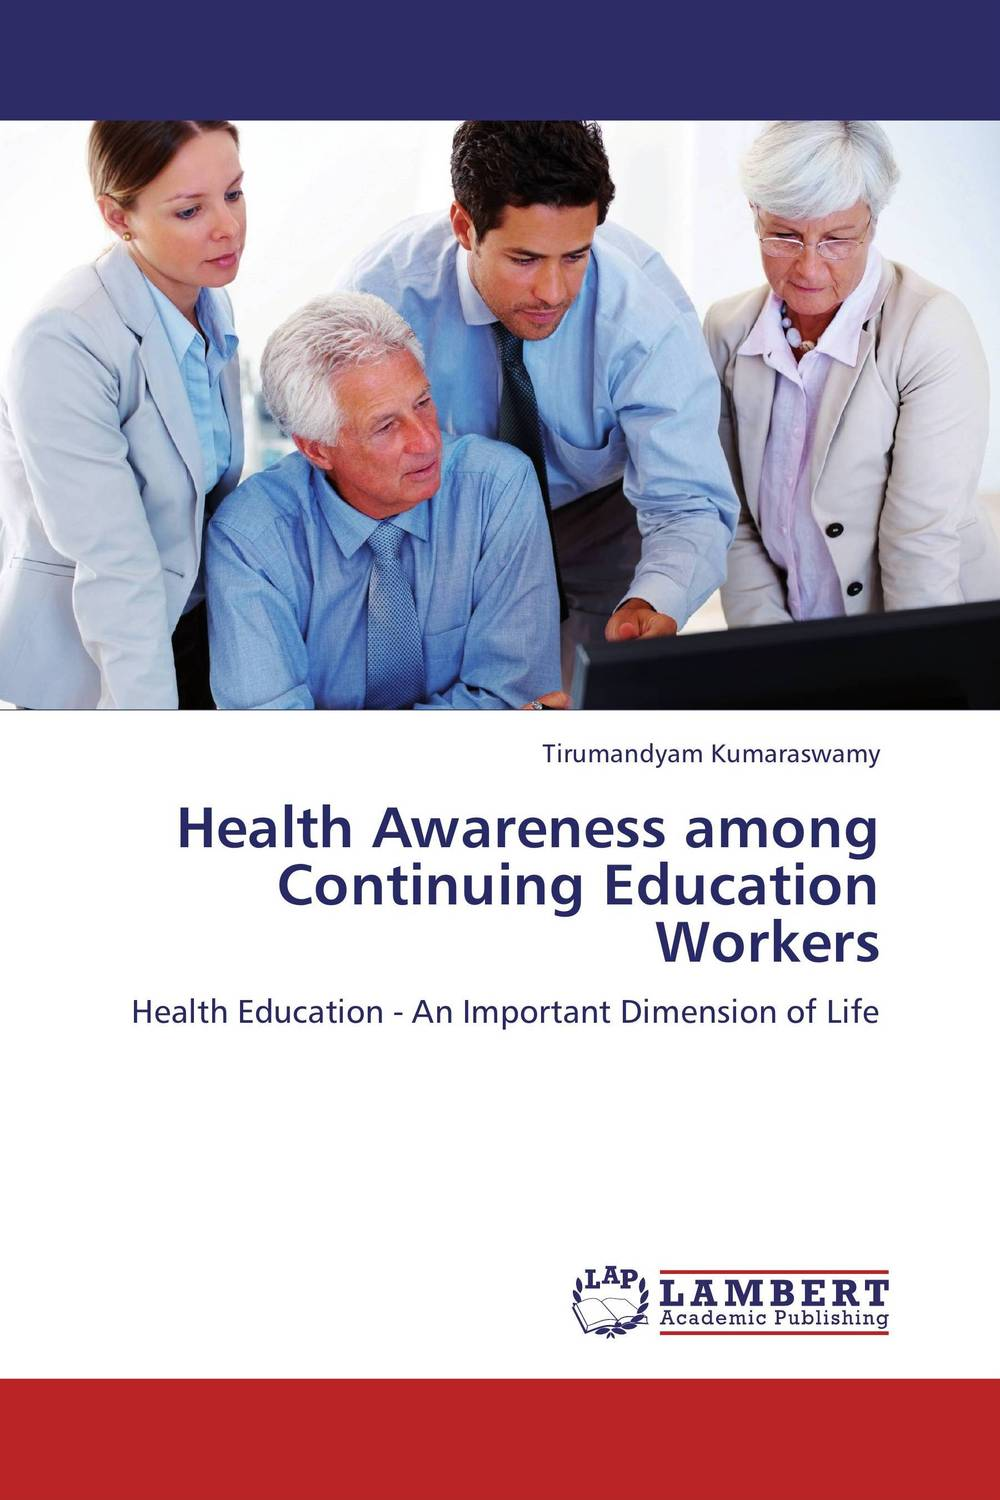 Health Awareness among Continuing Education Workers